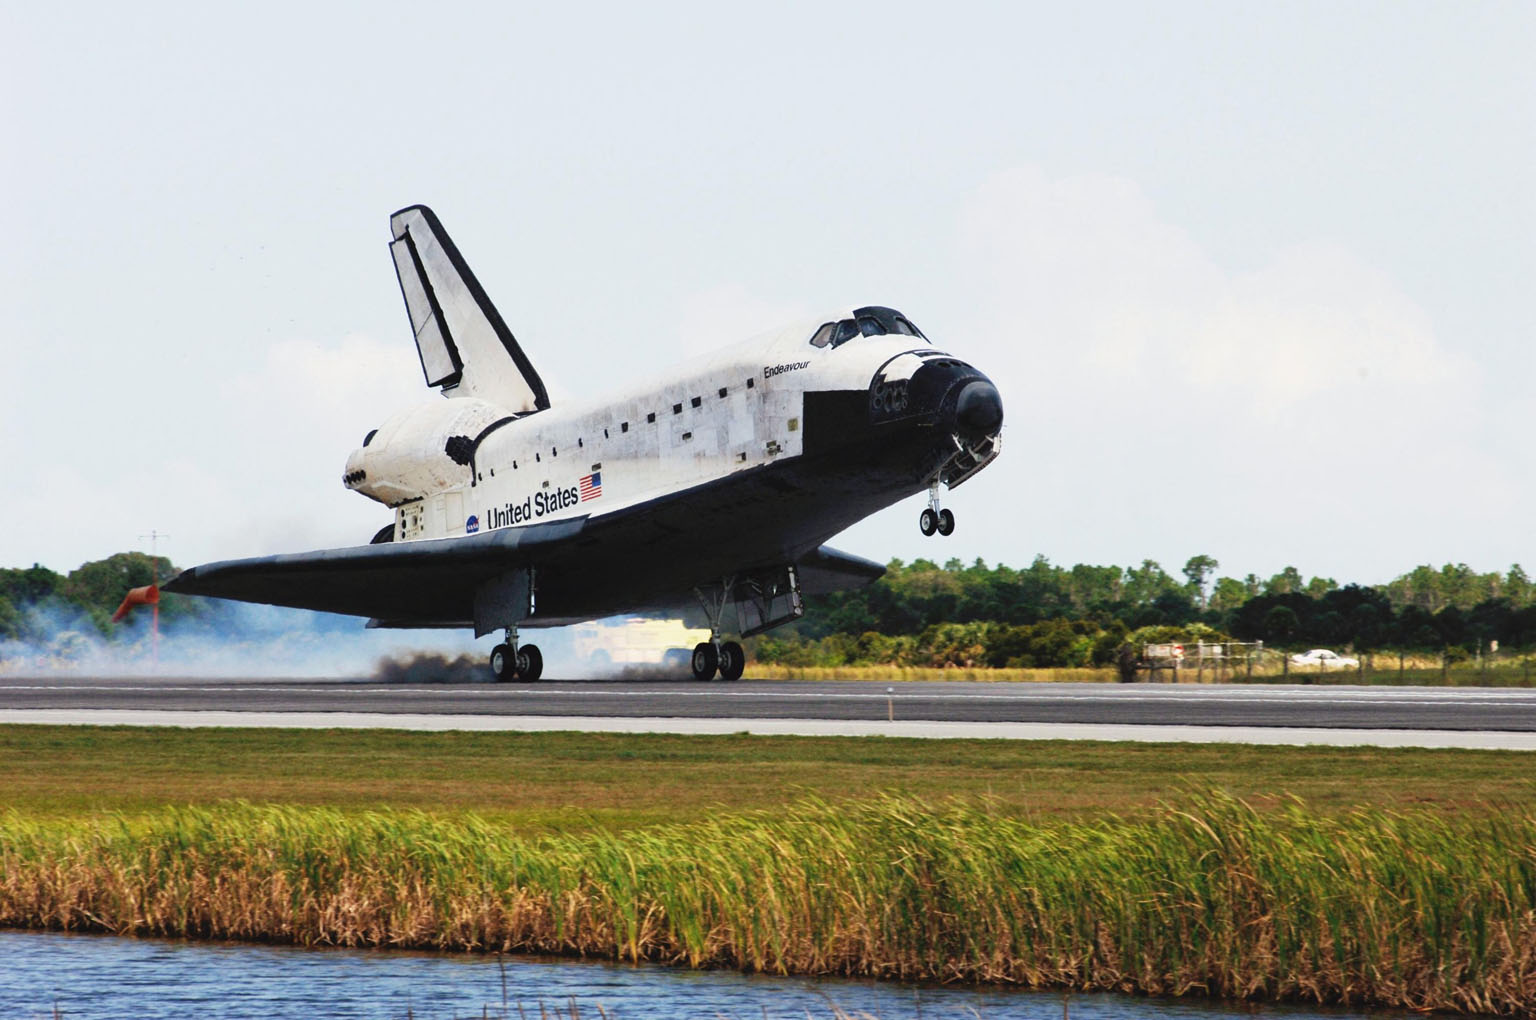 KENNEDY SPACE CENTER, FLA. -- Endeavour kicks up dust as it touches down on runway 15 at NASA's Kennedy Space Center after traveling nearly 5.3 million miles on mission STS-118. The Space Shuttle Endeavour crew, led by Commander Scott Kelly, completes a 13-day mission to the International Space Station. The STS-118 mission began Aug. 8 and installed a new gyroscope, an external spare parts platform and another truss segment to the expanding station. Endeavour's main gear touched down at 12:32:16 p.m. EDT. Nose gear touchdown was at 12:32:29 p.m. and wheel stop was at 12:33:20 p.m. Endeavour landed on orbit 201. STS-118 was the 119th space shuttle flight, the 22nd flight to the station, the 20th flight for Endeavour and the second of four missions planned for 2007. This was the 65th landing of an orbiter at Kennedy. Photo credit: NASA/Rafael Hernandez